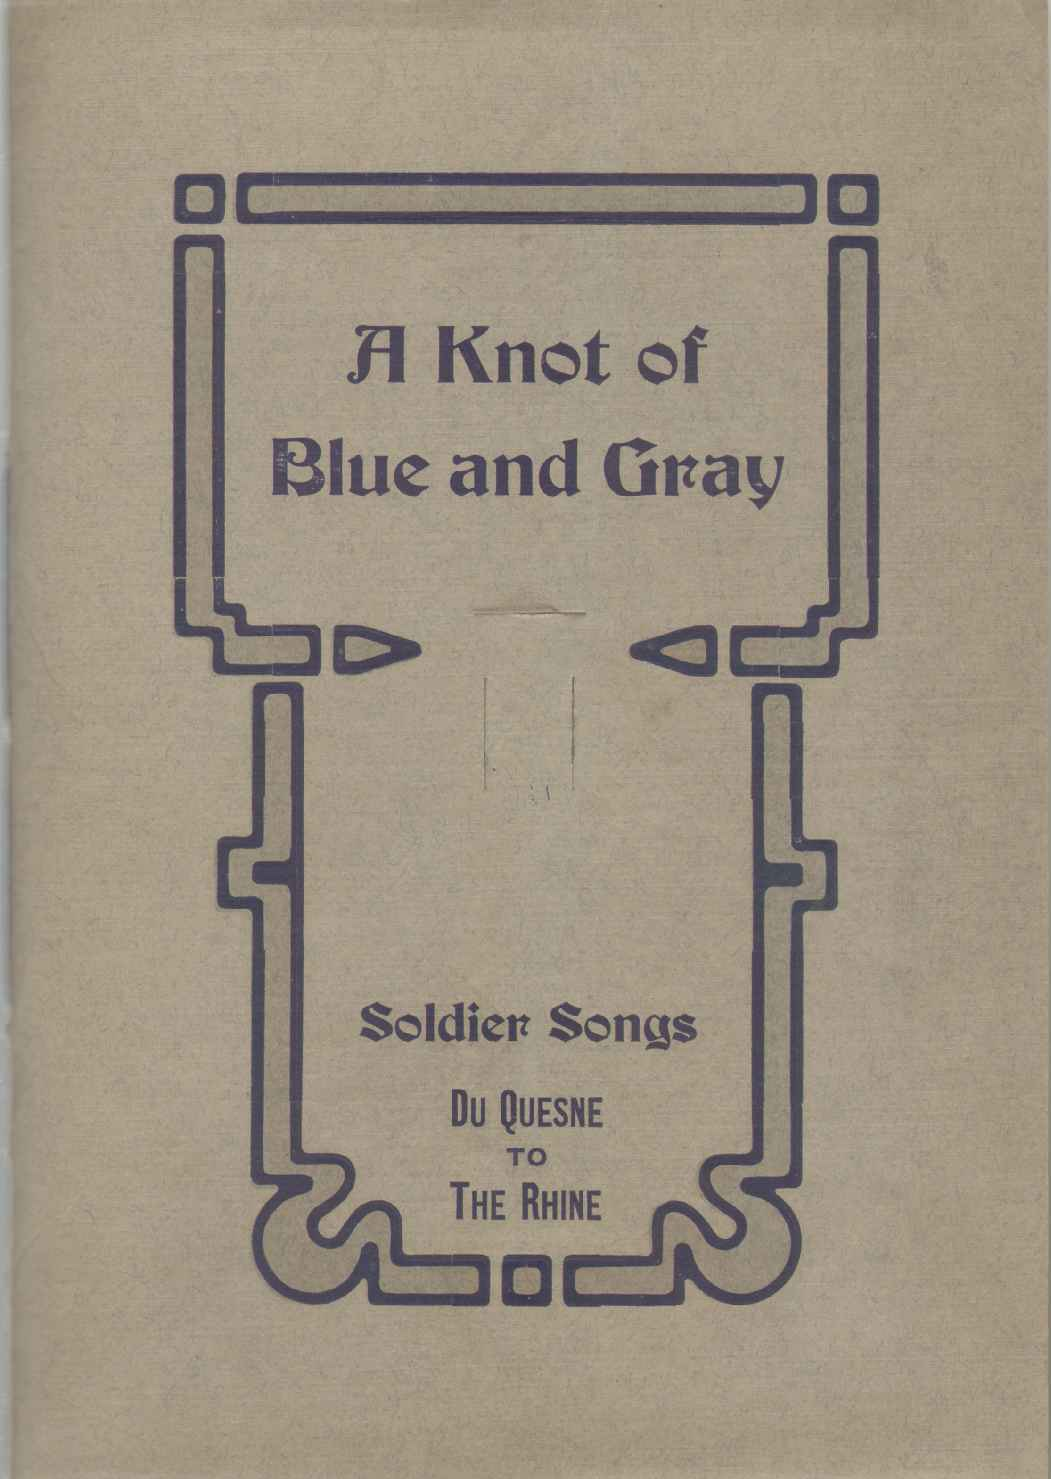 Image for A KNOT OF BLUE AND GRAY Soldier Songs, Du Quesne to the Rhine